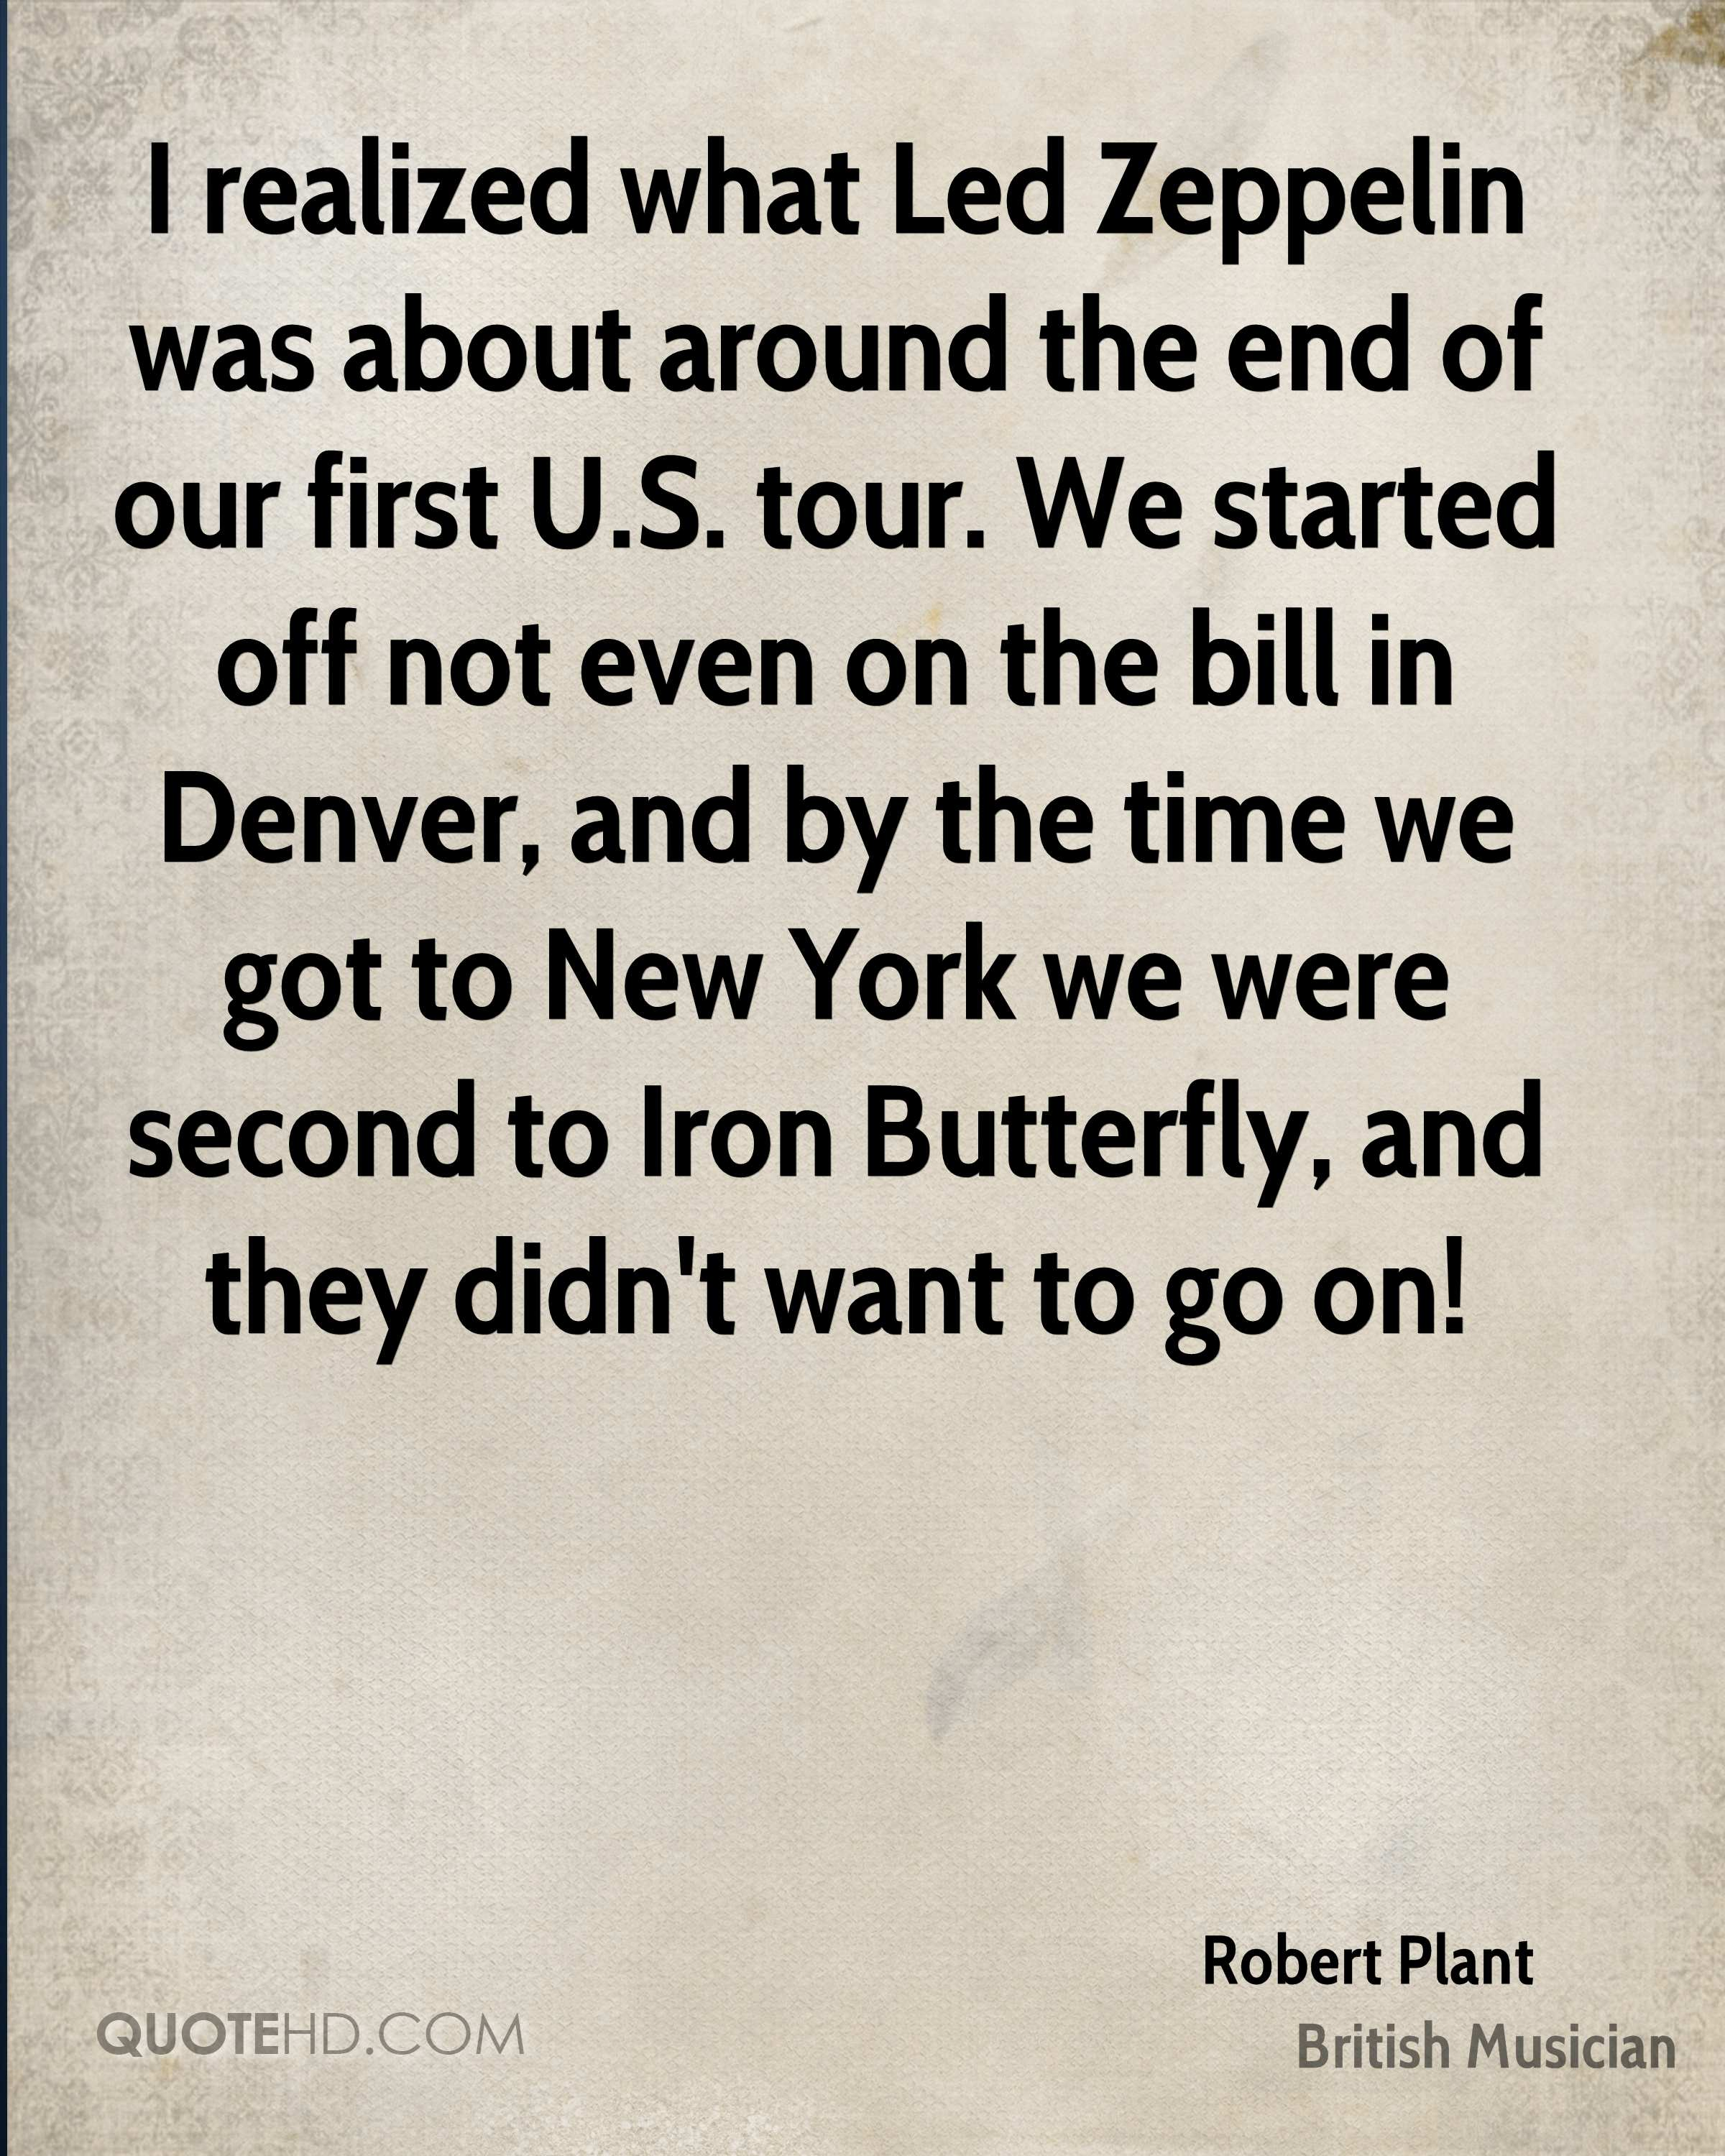 I realized what Led Zeppelin was about around the end of our first U.S. tour. We started off not even on the bill in Denver, and by the time we got to New York we were second to Iron Butterfly, and they didn't want to go on!